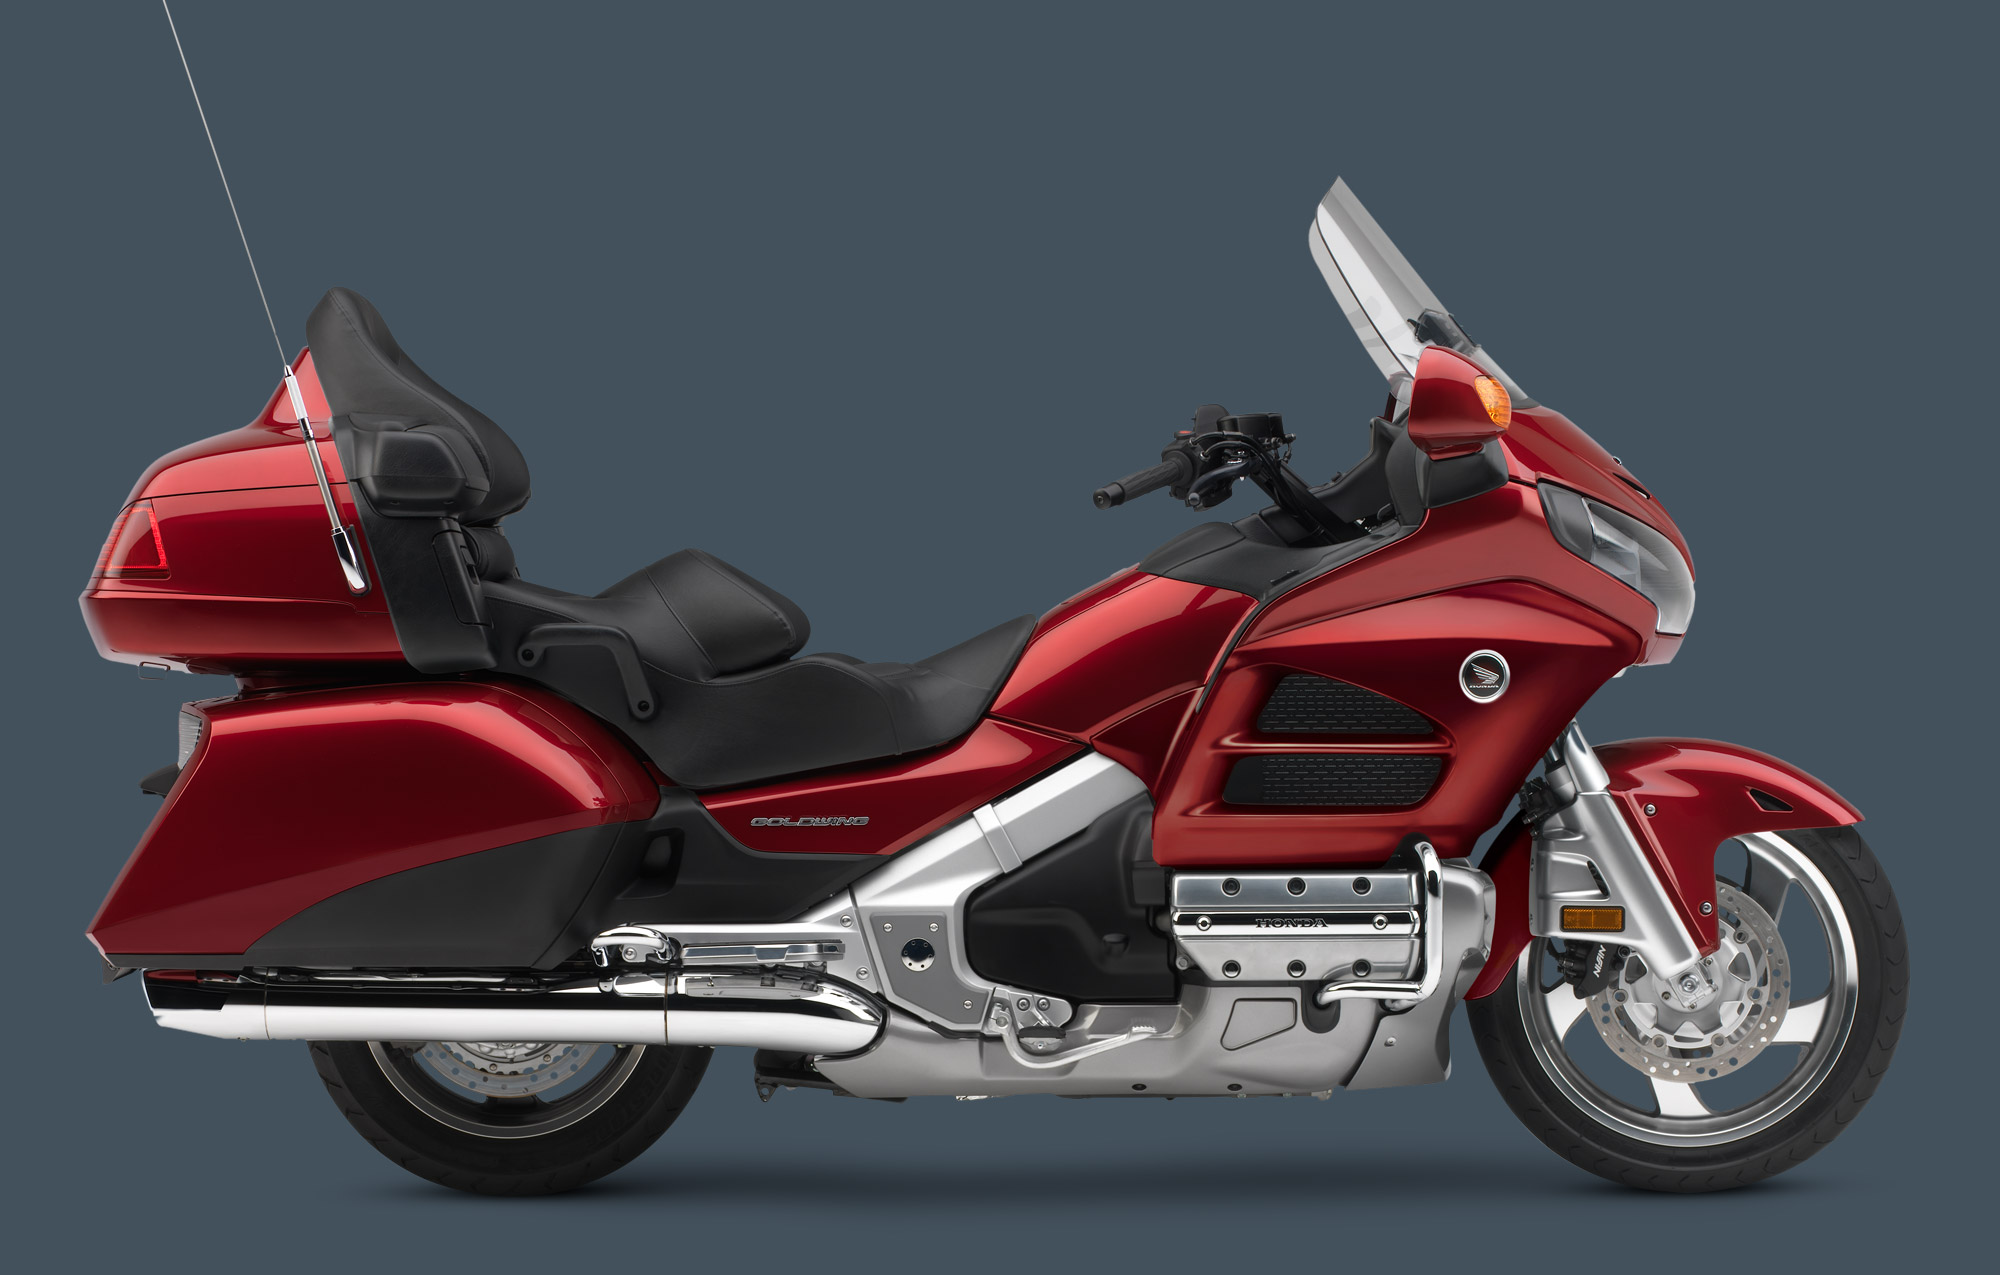 HONDA GL 1800 Gold Wing - 2012, 2013 - autoevolution